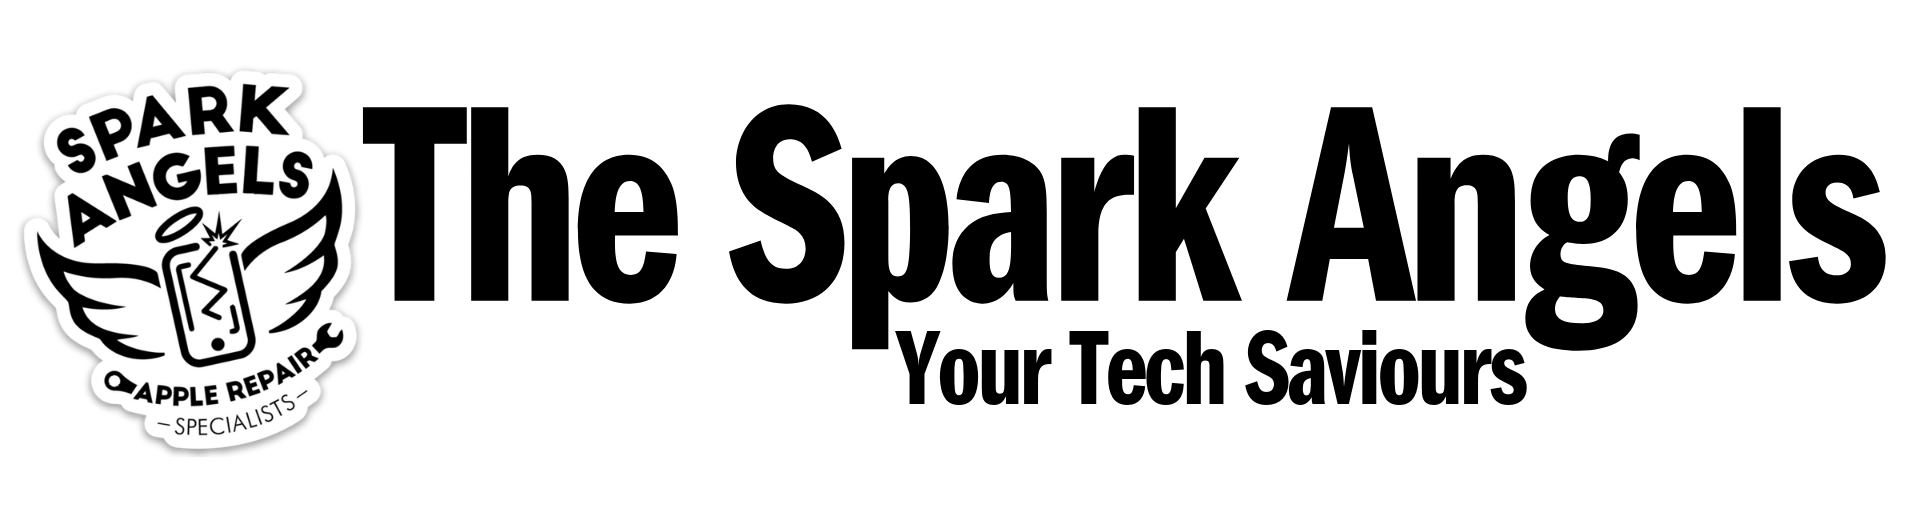 The Spark Angels Repair Service Logo